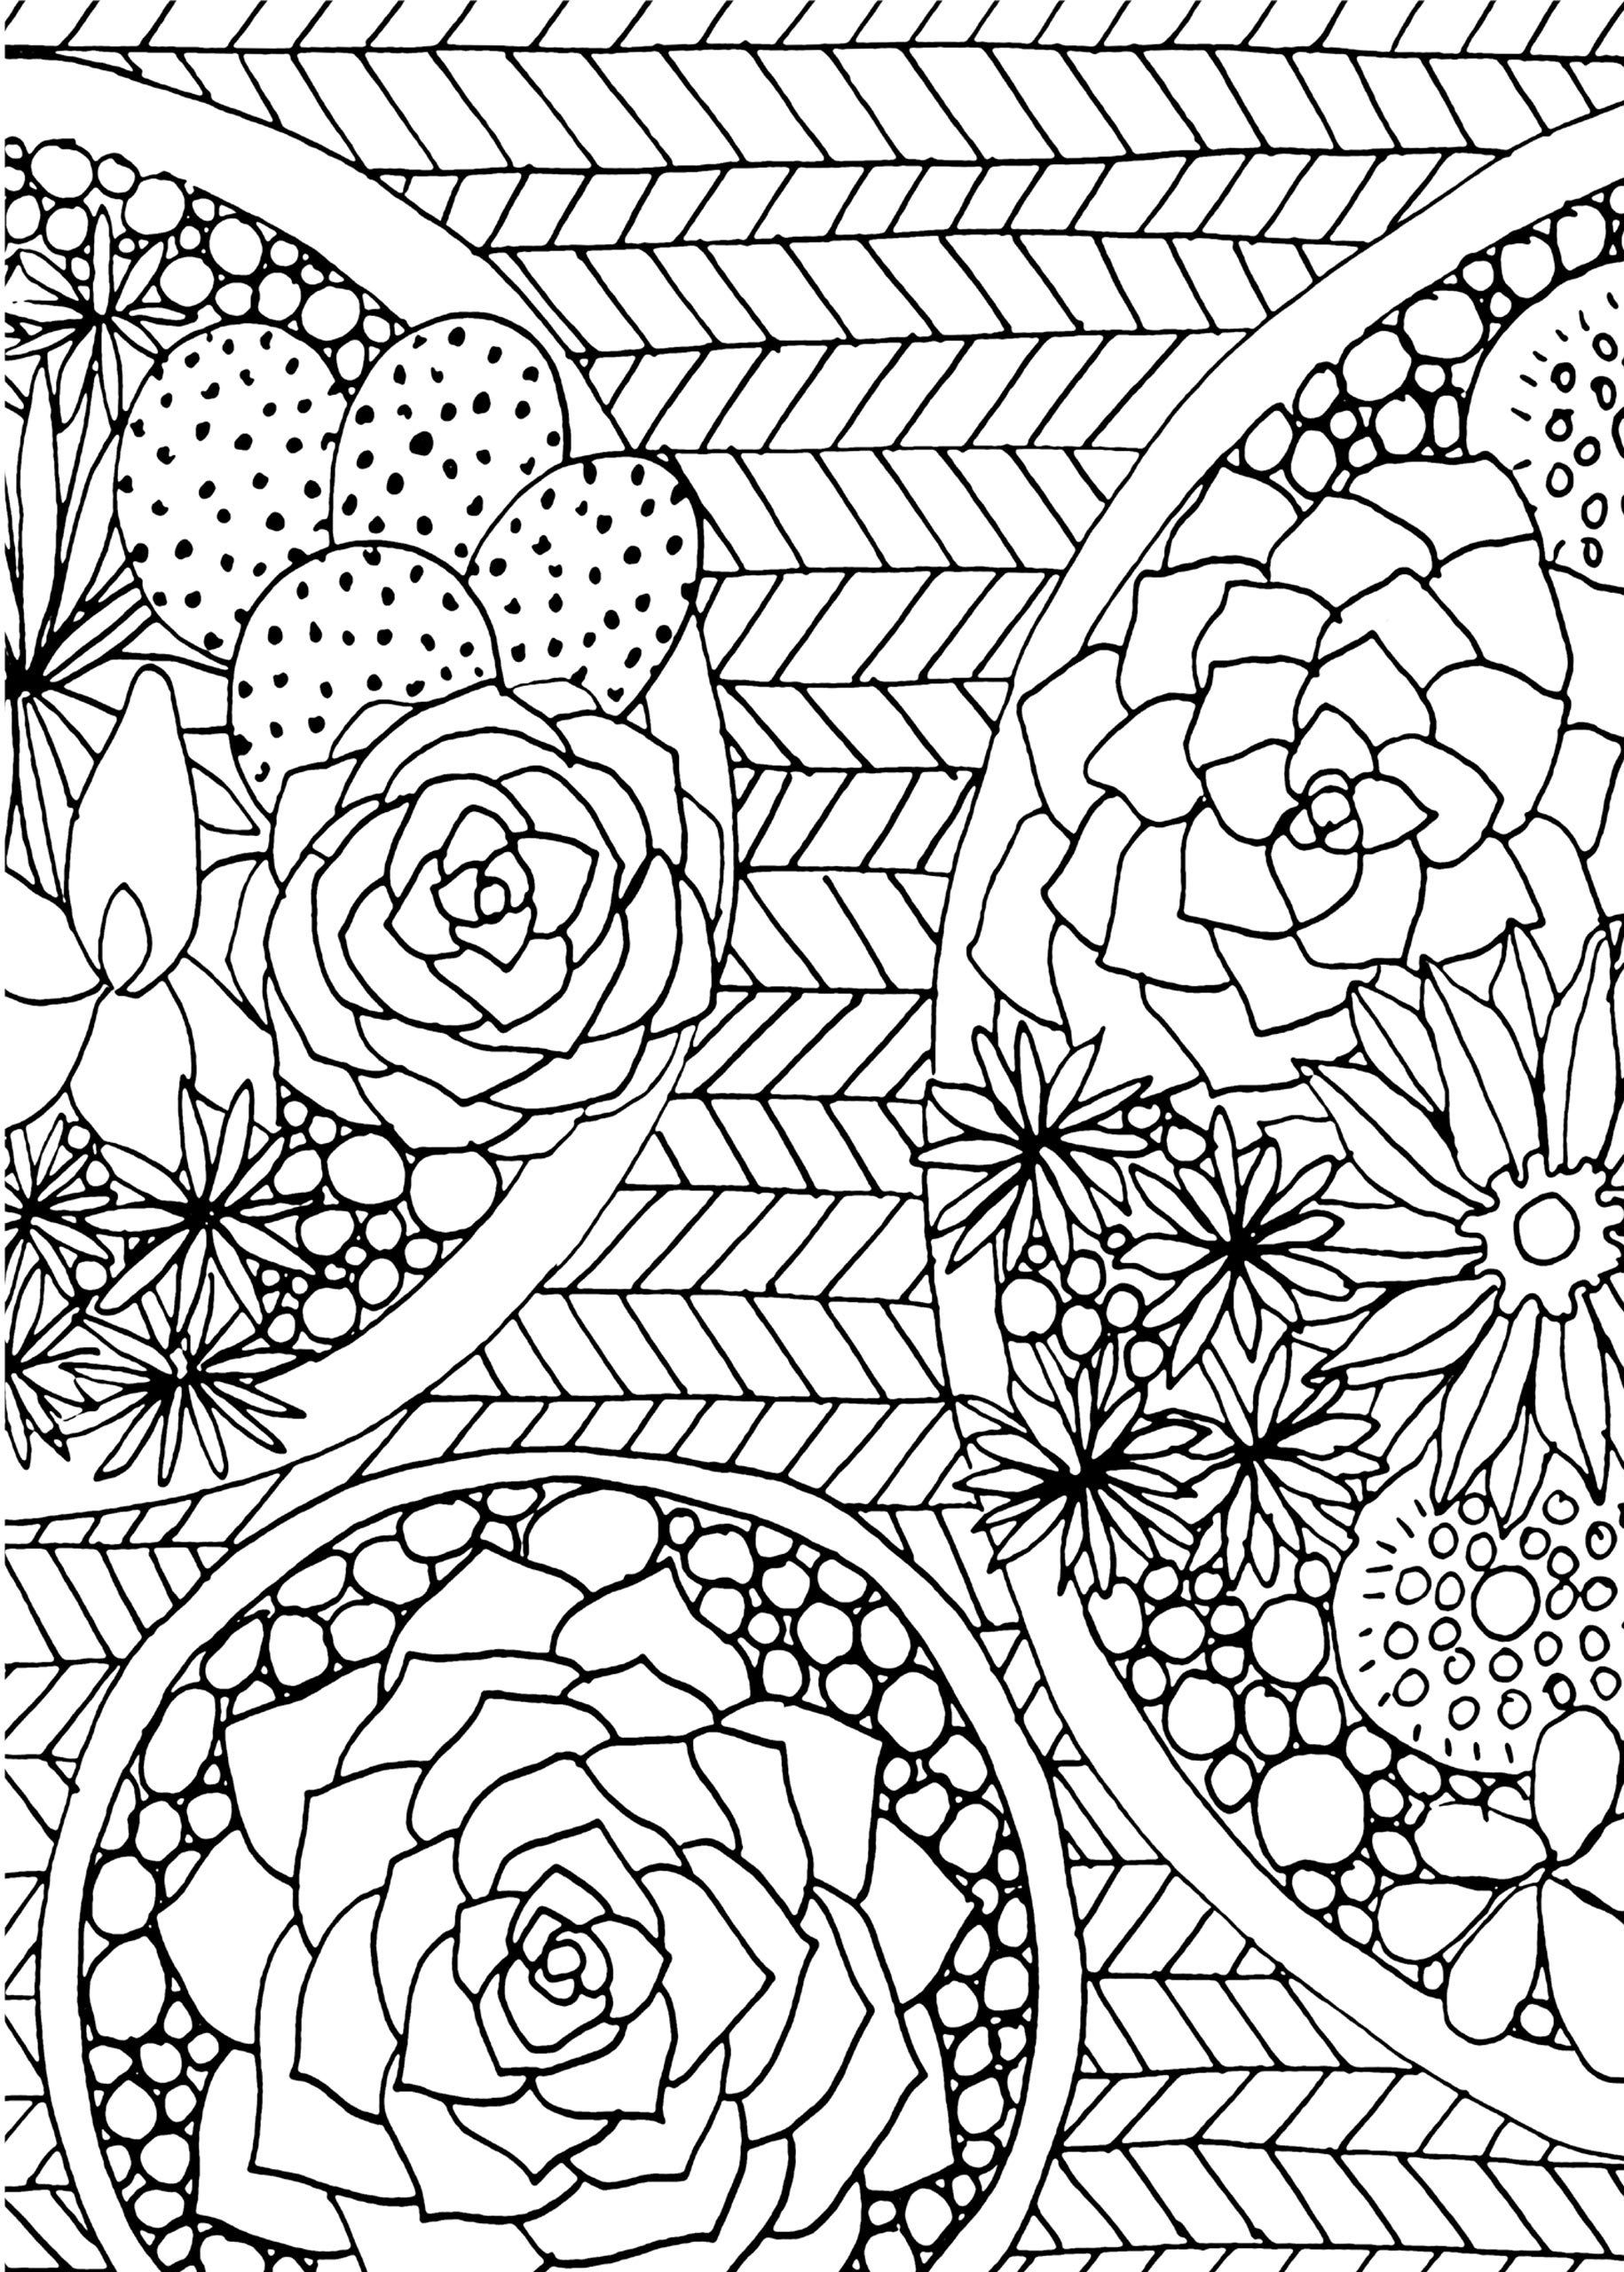 Amazon Succulents Portable Adult Coloring Book 31 Stress Relieving Designs Studio 9781441321435 Peter Pauper Press Books